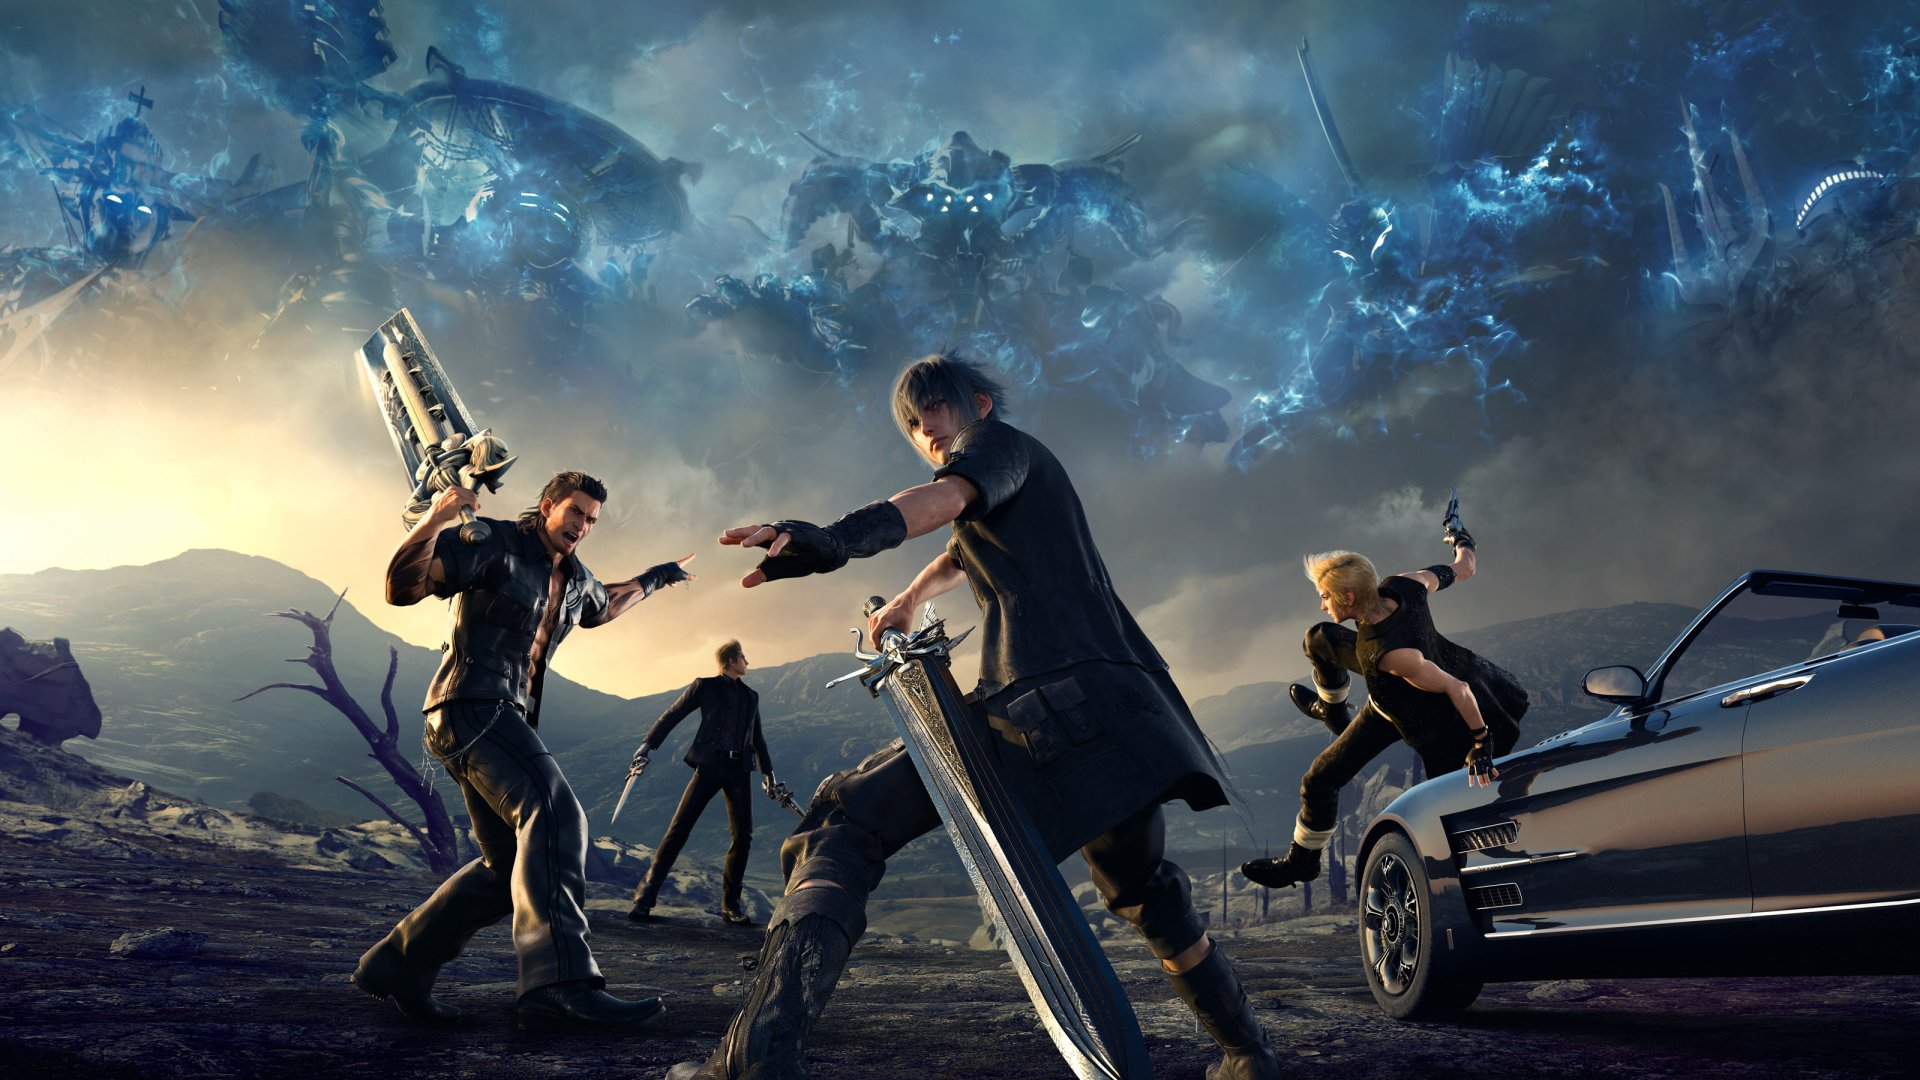 117 Final Fantasy Xv Hd Wallpapers: Final Fantasy XV HD Wallpaper